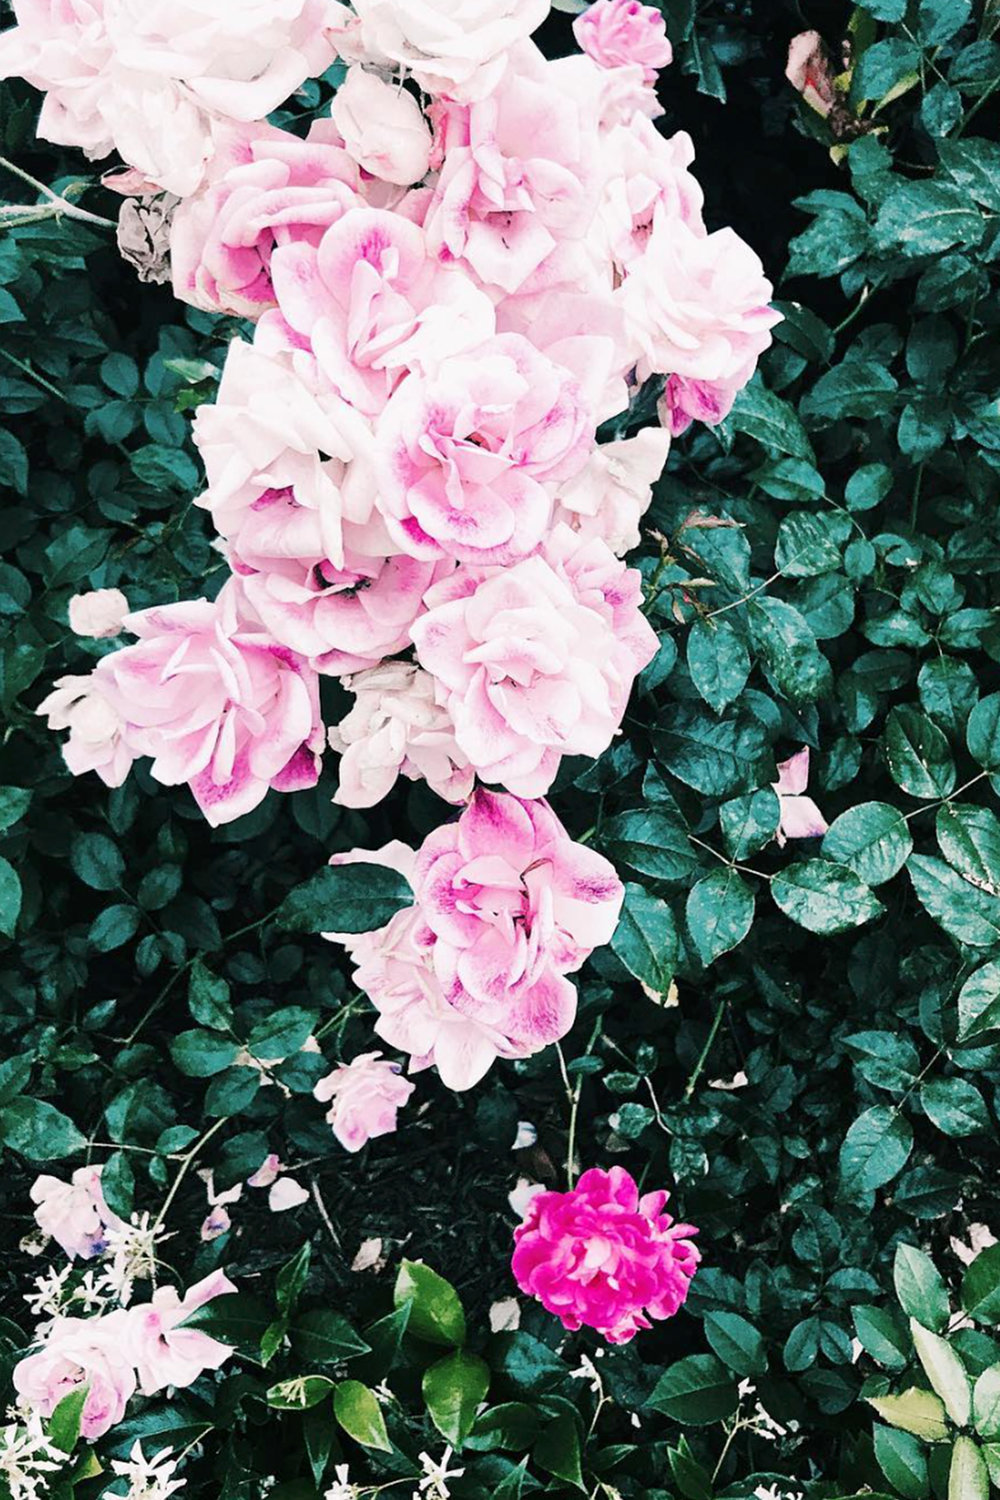 Pink Roses / Flowers / Photo Editing / Instagram Photography Ideas / Kelly Fiance Creative